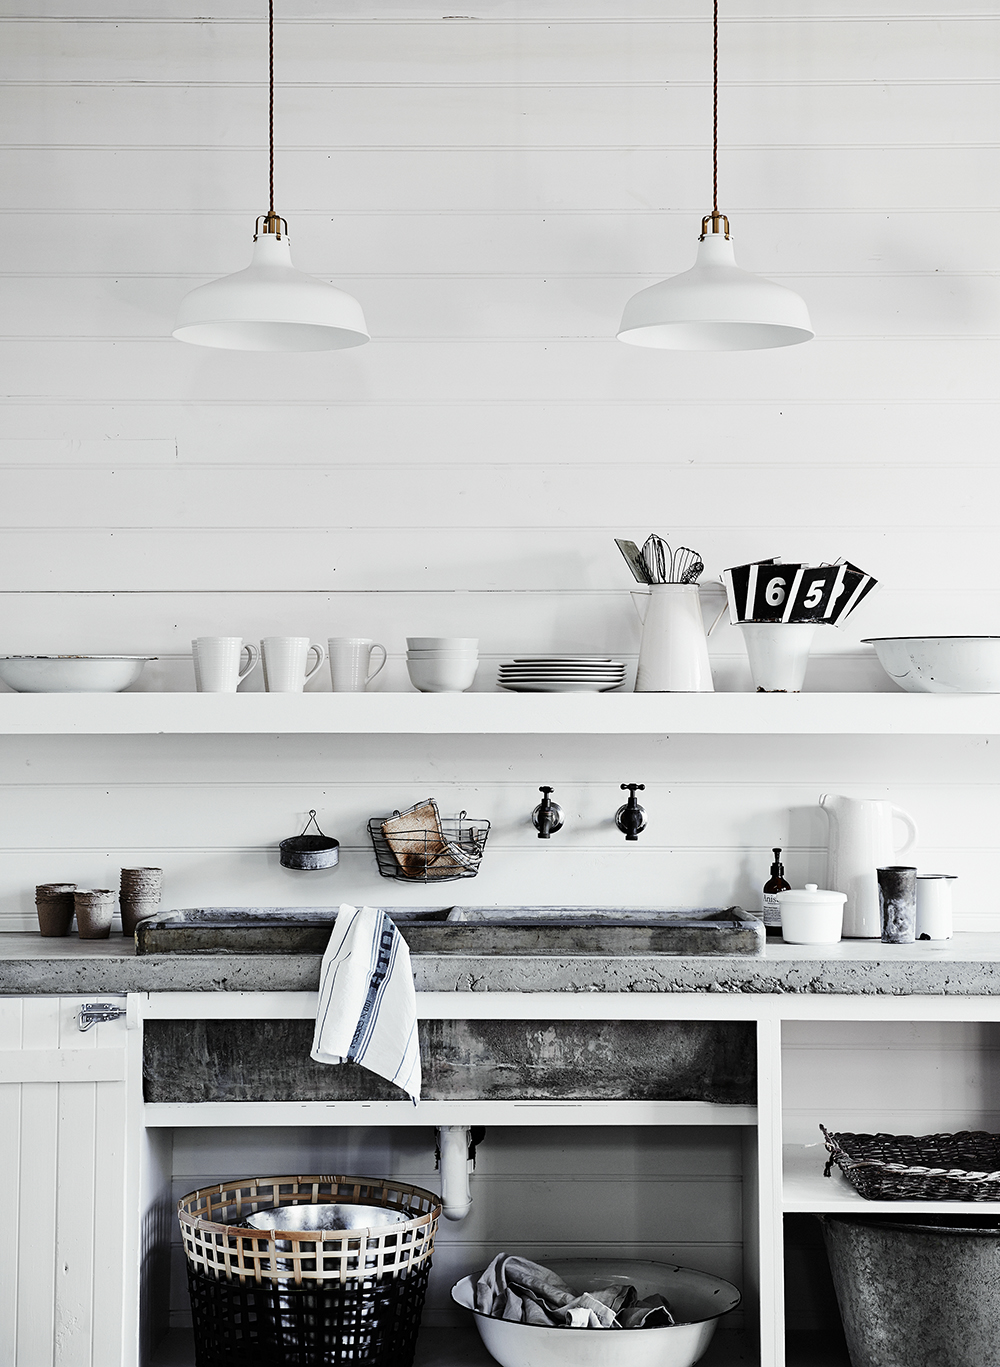 The kitchen at The Estate, Trentham. Image by Lisa Cohen.